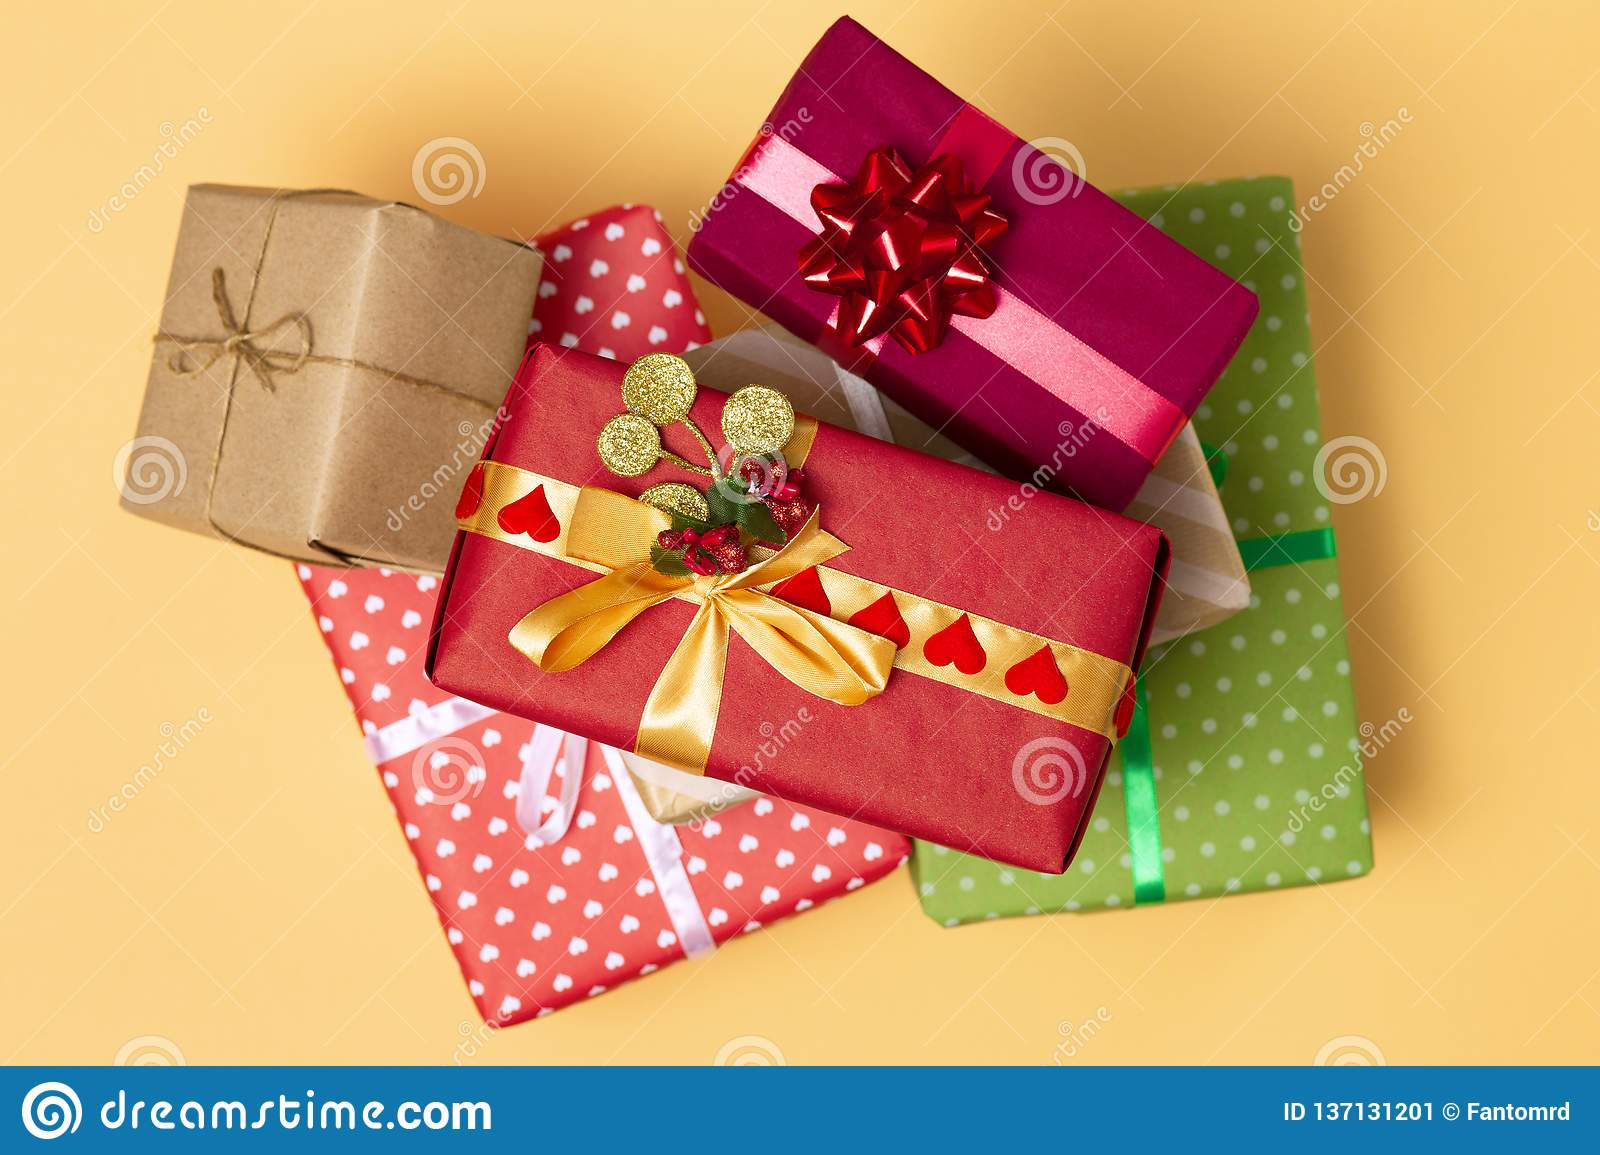 Background Of Gifts Boxes Wrapped In Decorative Paper On A Colored